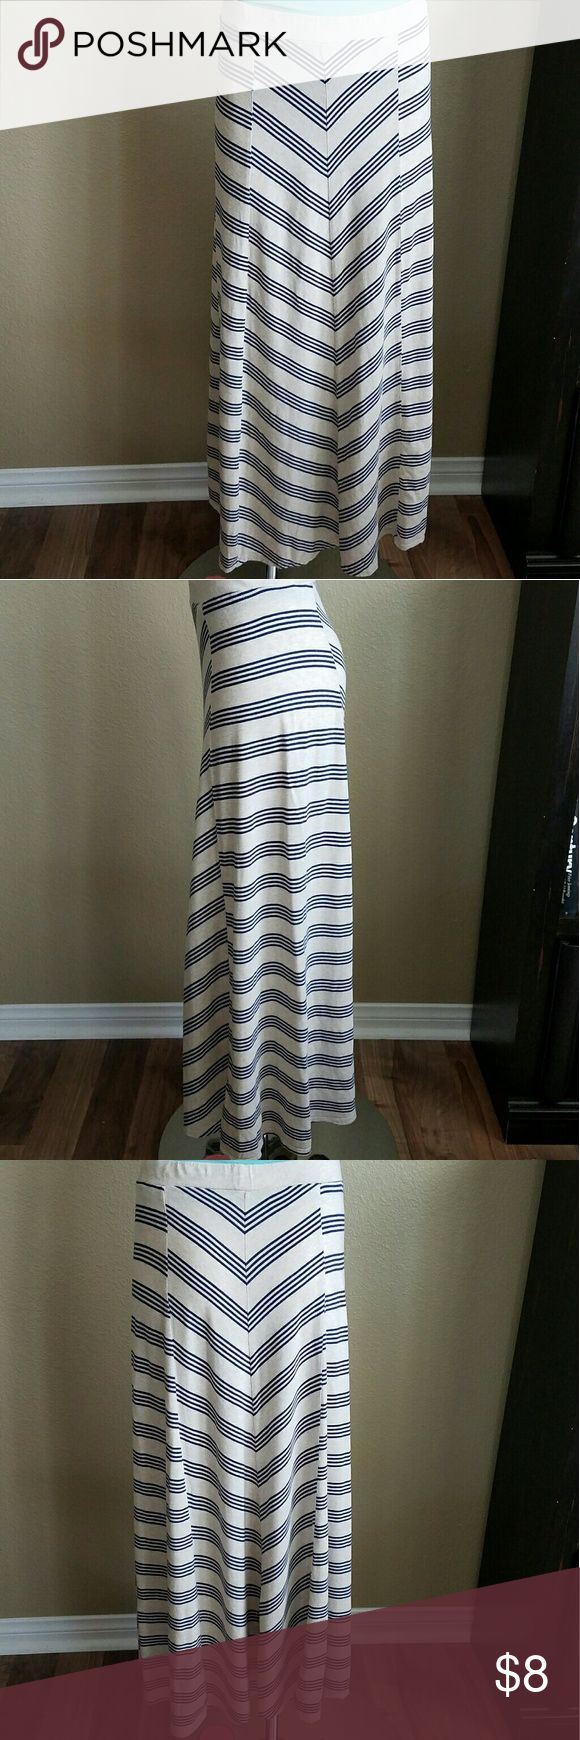 "Tommy Hilfiger Striped Maxi Skirt Pre loved striped maxi skirt. Elastic waistband. 37.5"" long. Measured flat at the center. 60% cotton 40% modal. Very little pilling on fabric. Tommy Hilfiger Skirts Maxi"